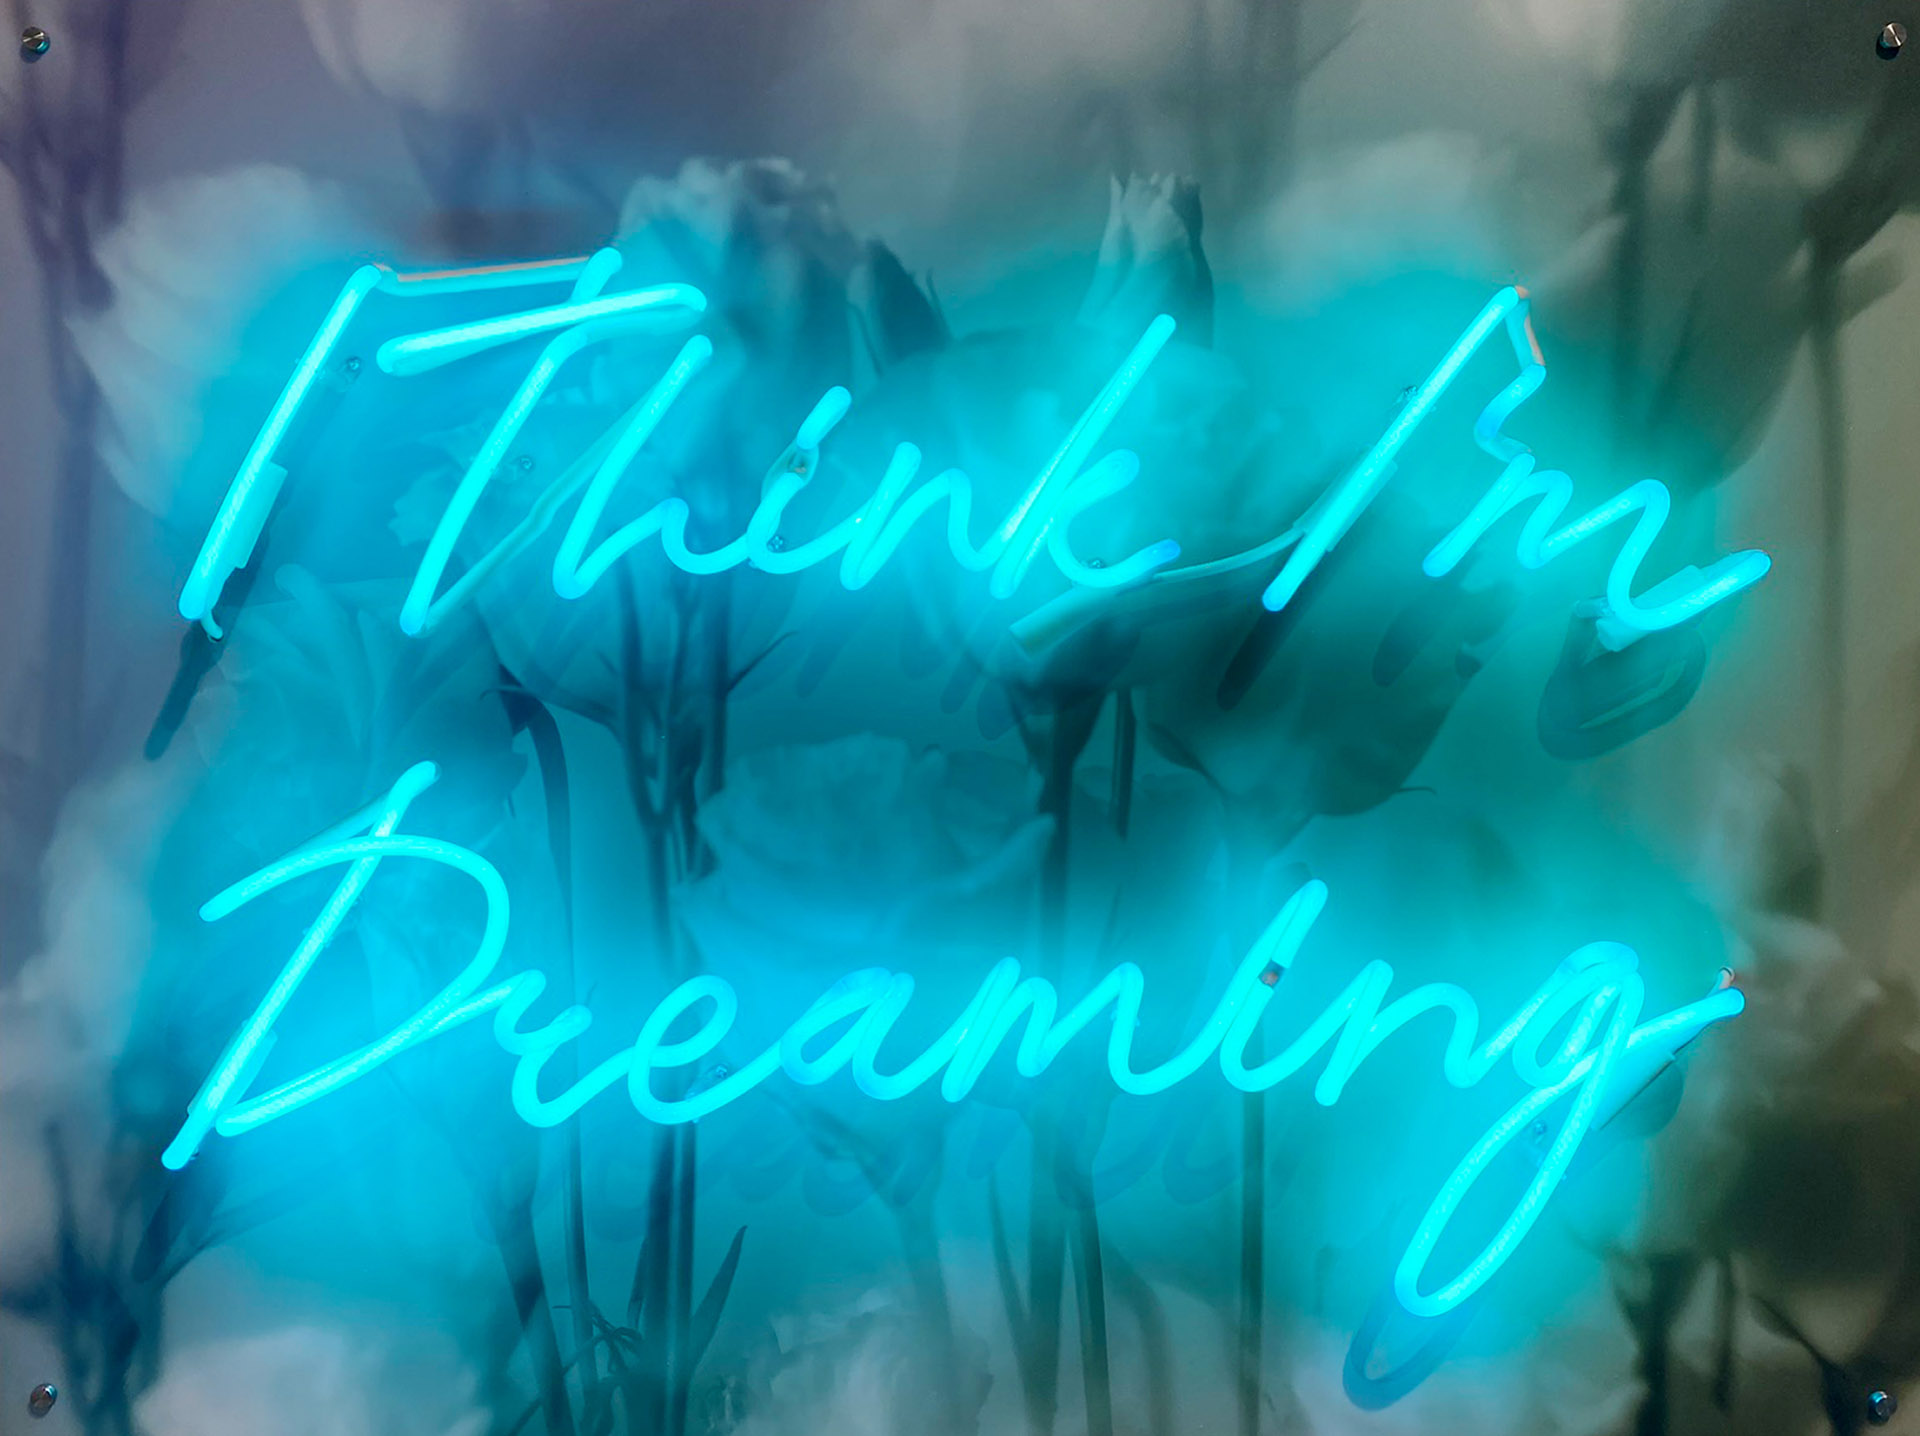 Indira-Cesarine-I-Think-Im-Dreaming-Neon-Sculpture-Photography-Mounted-on-Sintra-1920.jpg